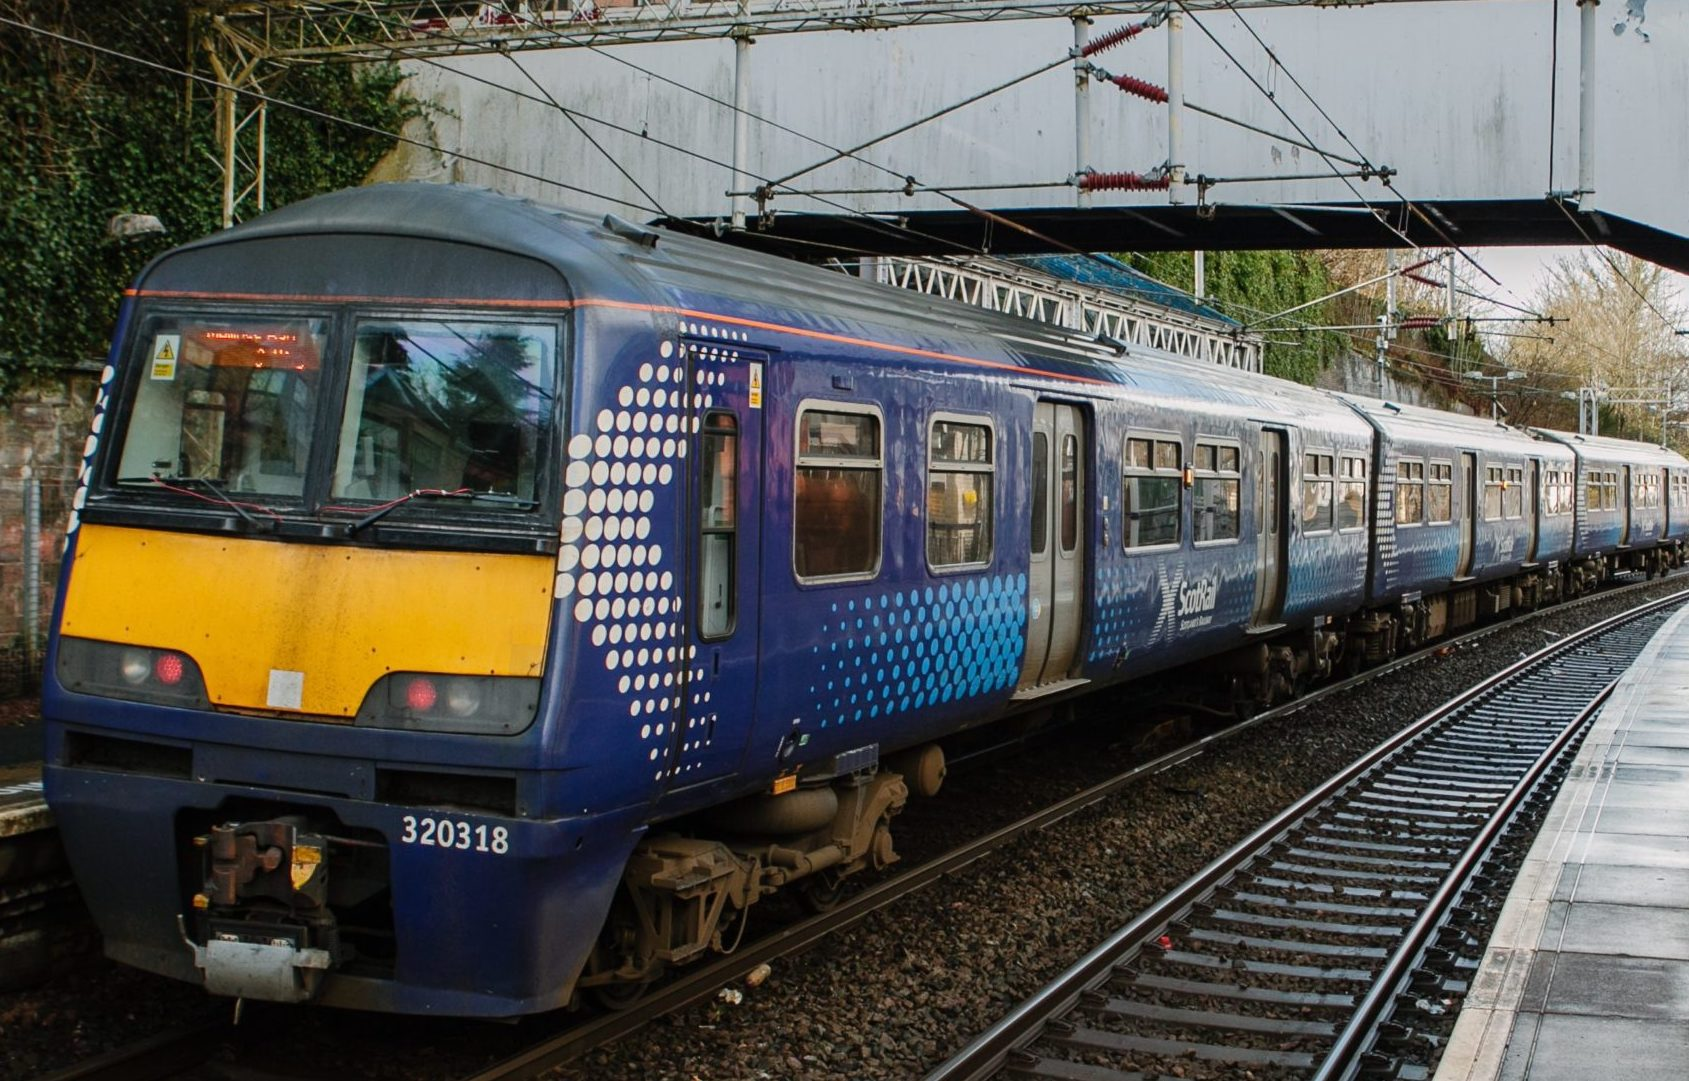 A ScotRail Class 320 train in Port Glasgow station